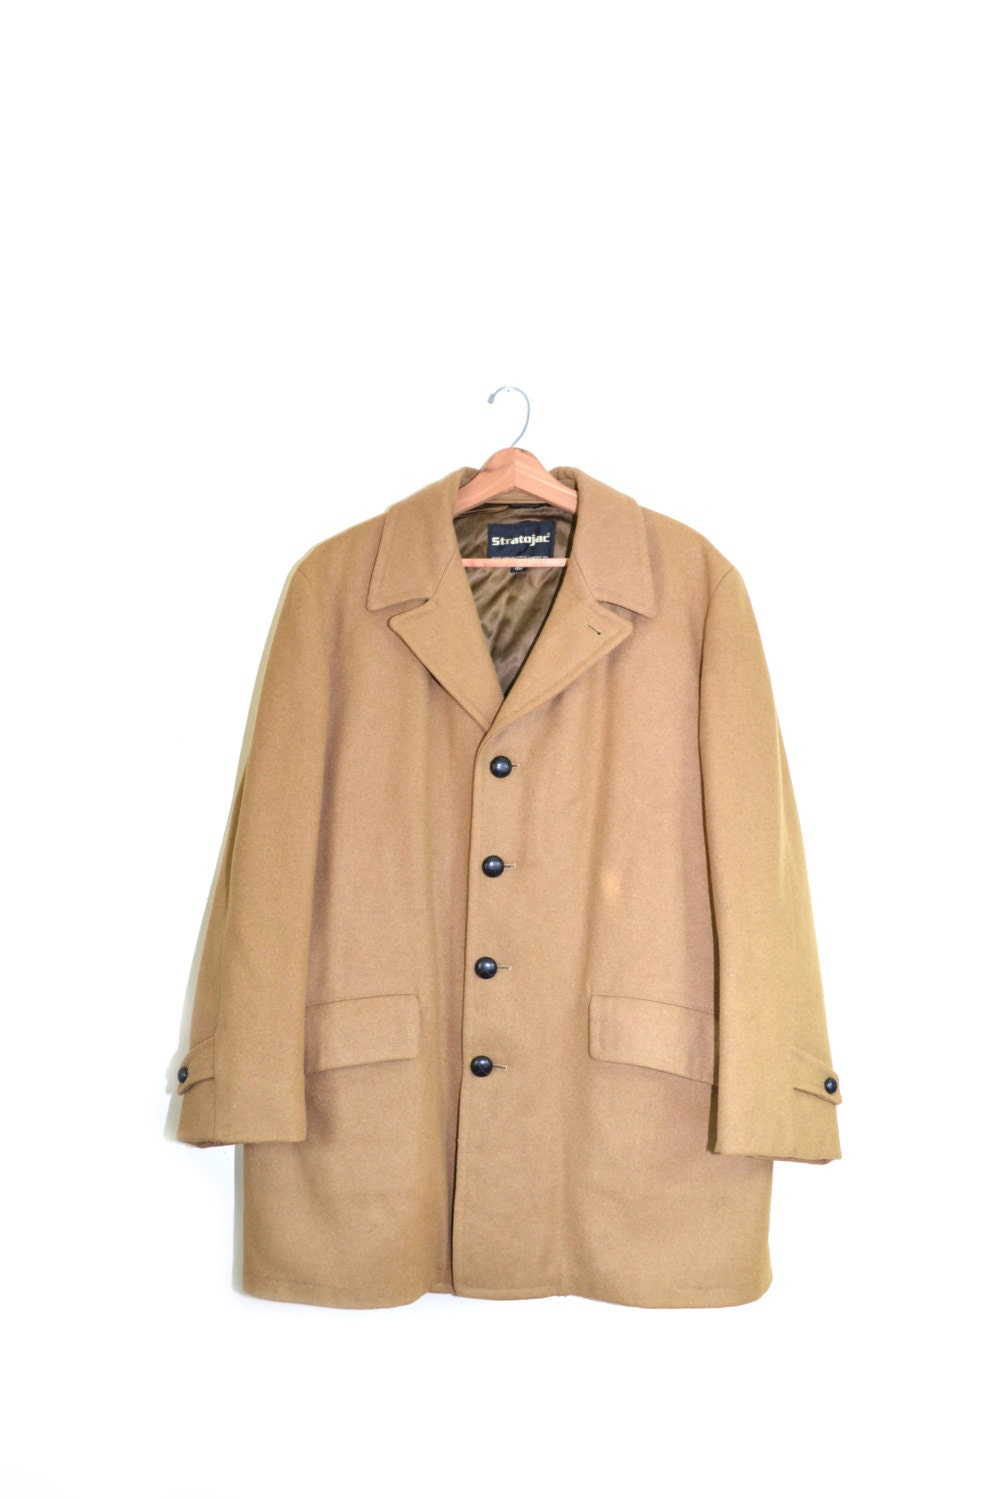 Find great deals on eBay for mens camel wool coat. Shop with confidence. Skip to main content. eBay: Shop by category. Shop by category. New Listing Stafford Camel Hair Blazer Jacket Brown Wool Coat Men's Size 41 Long Soft Brown. Stafford · 41 · Long. $ or Best Offer. Free Shipping.